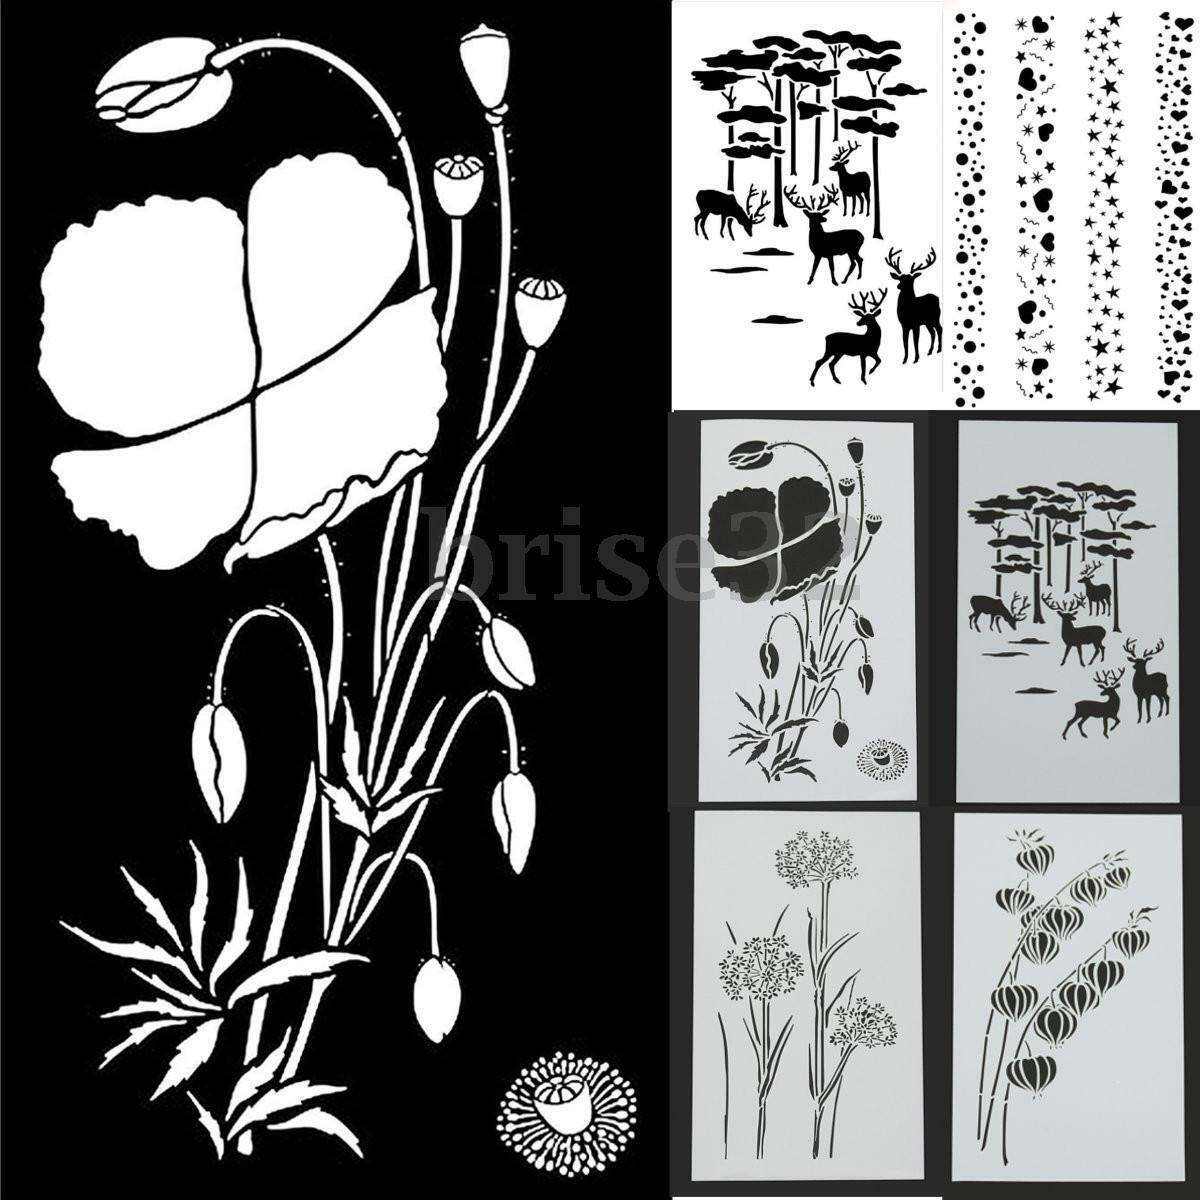 reusable stencil airbrush painting art diy home decor scrapbooking album craft cad. Black Bedroom Furniture Sets. Home Design Ideas